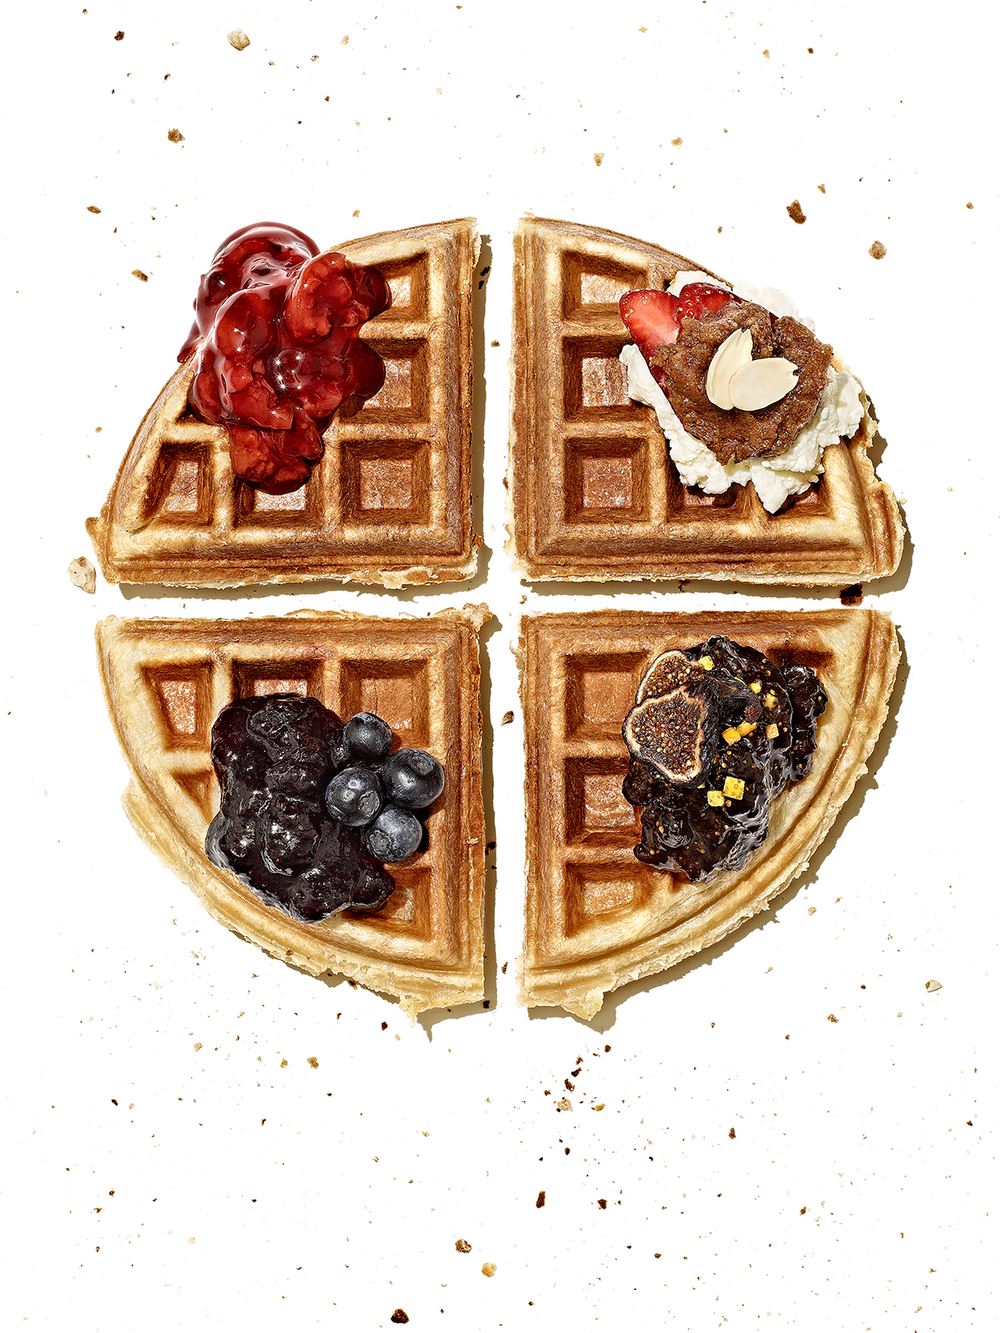 Waffles02_Workbook.jpg